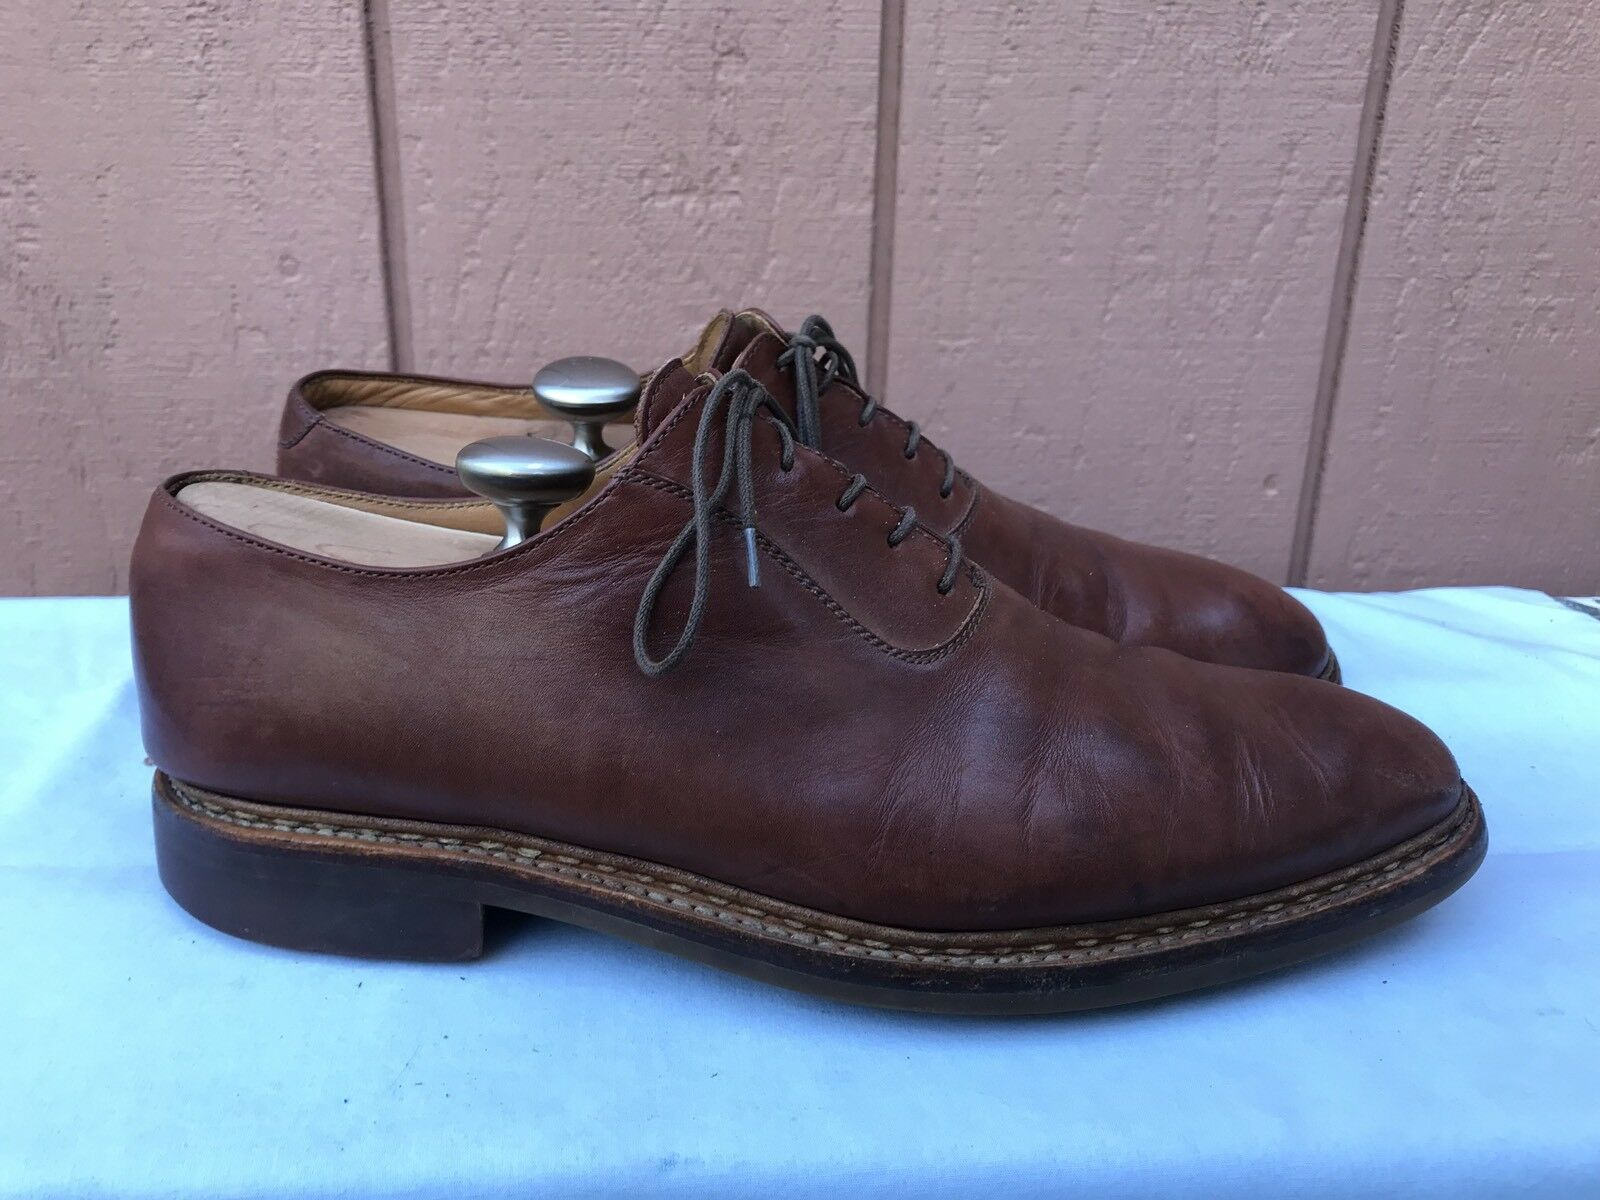 Heschung US 9 Classics Dress Oxford Mens Brown Leather shoes Norwegian  A2